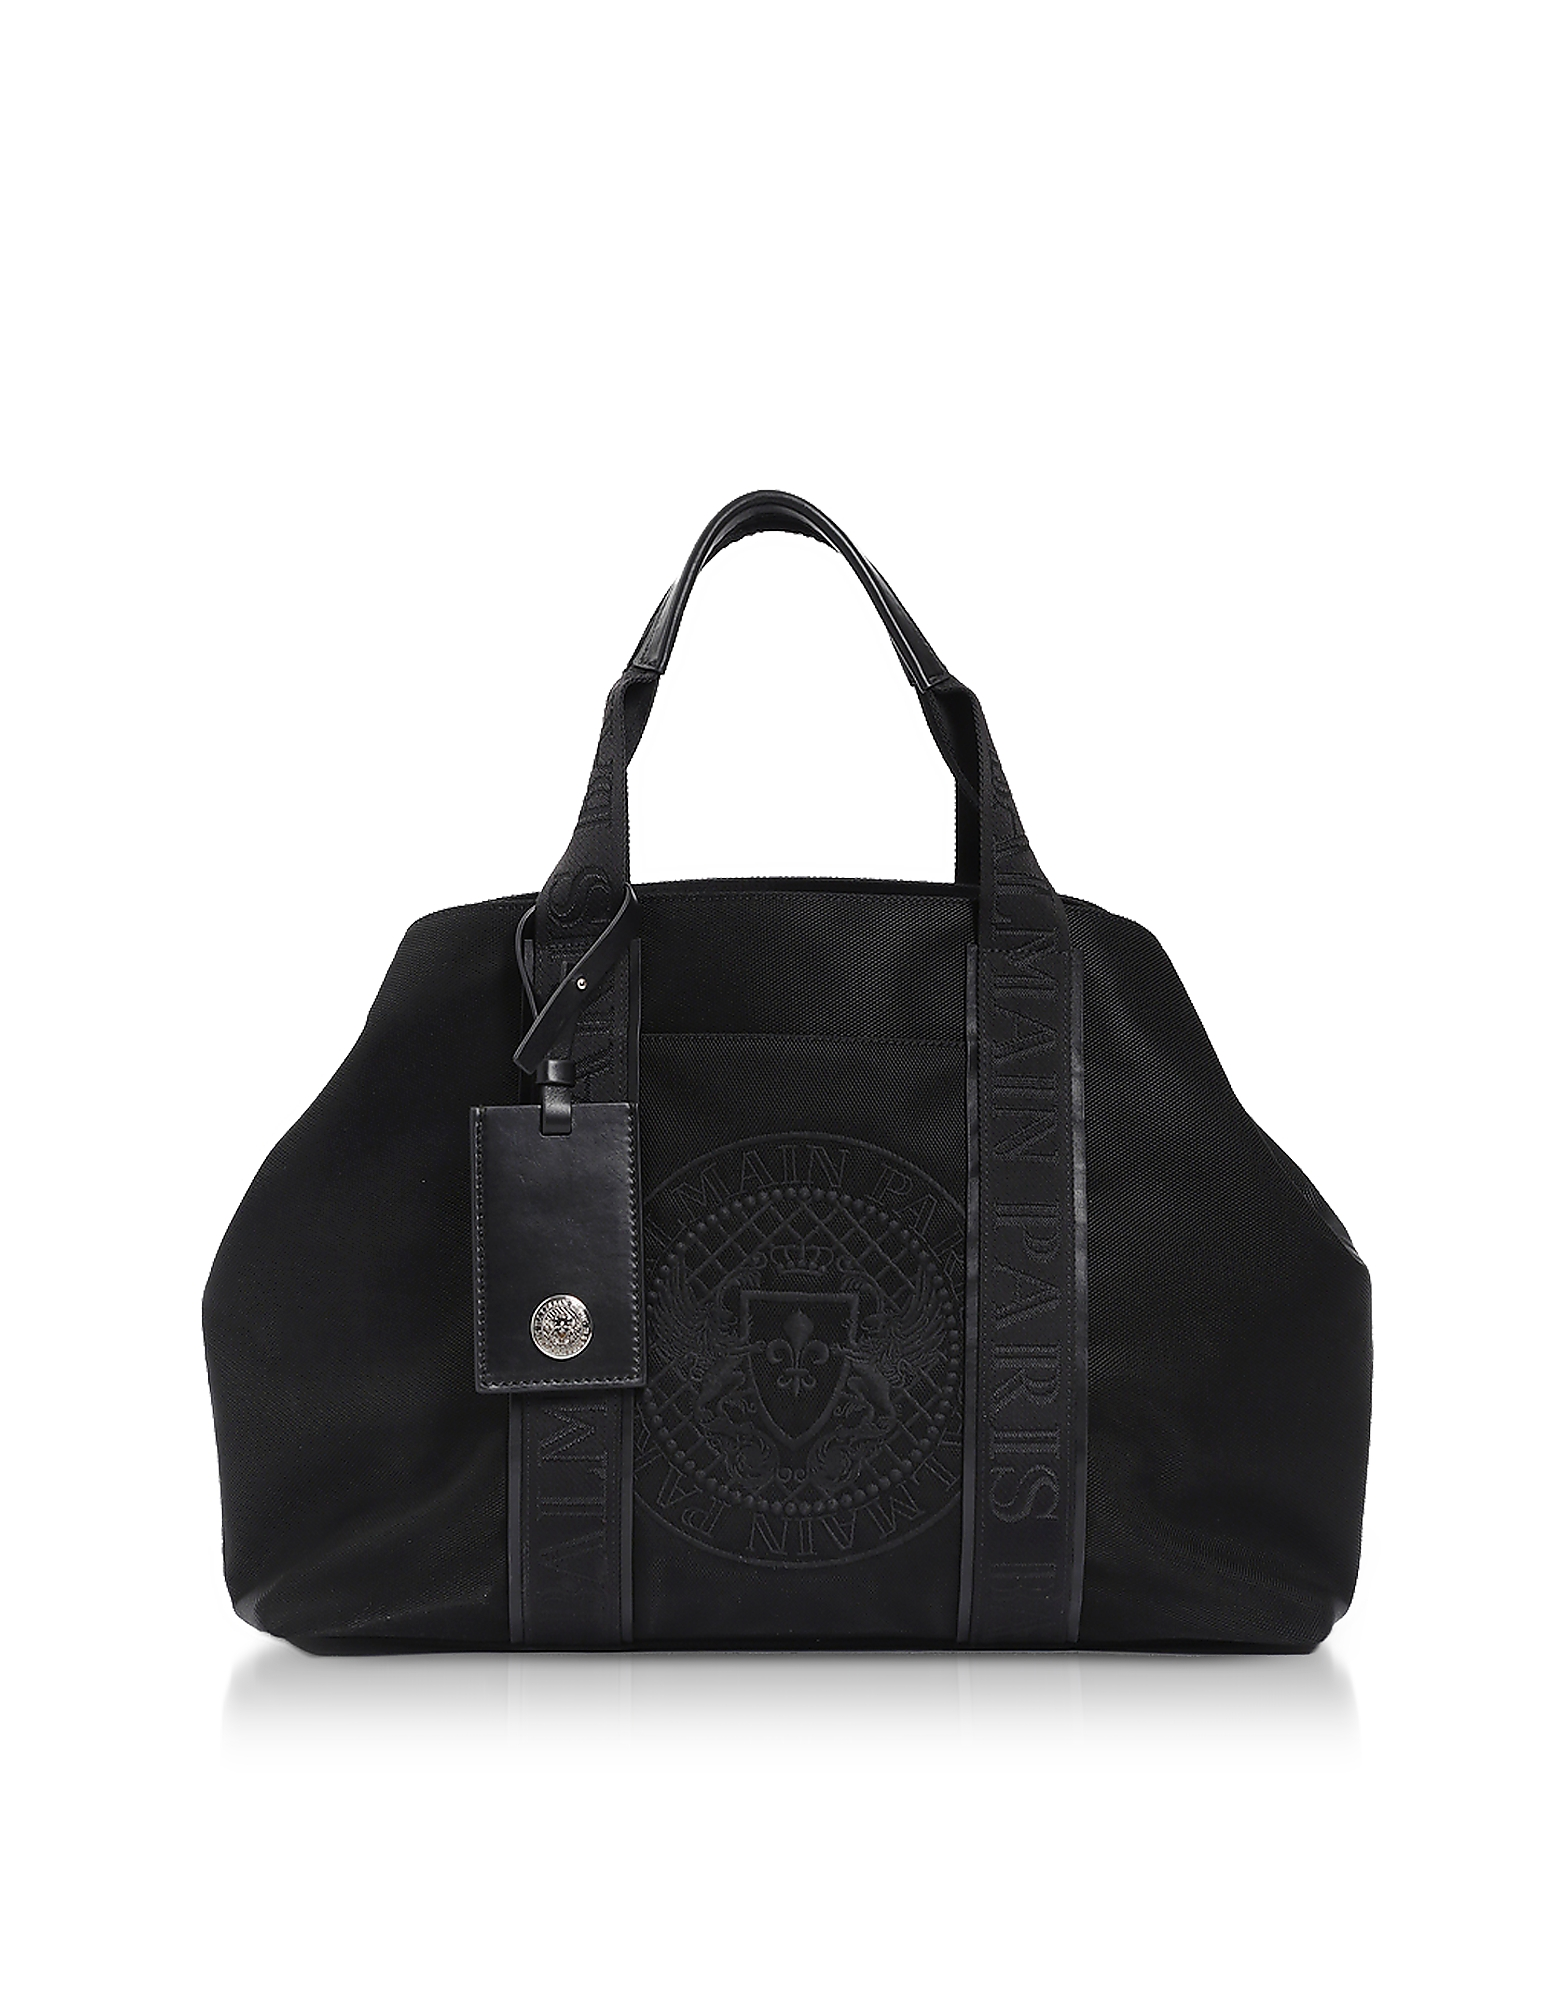 Balmain Men's Bags, Black Nylon Men's Tote Bag